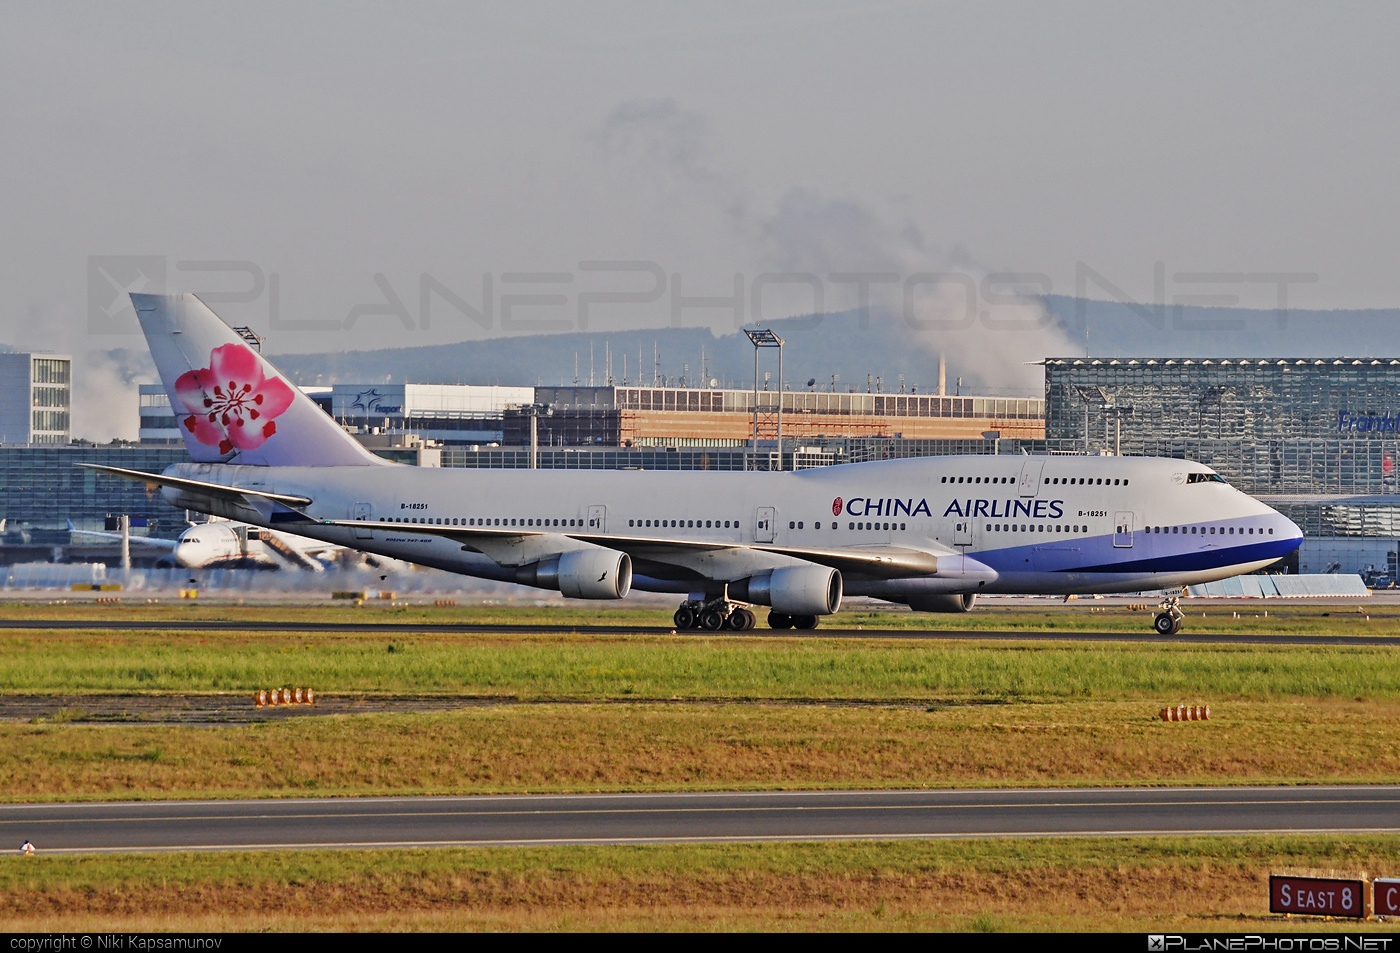 Boeing 747-400 - B-18251 operated by China Airlines #b747 #boeing #boeing747 #chinaairlines #jumbo